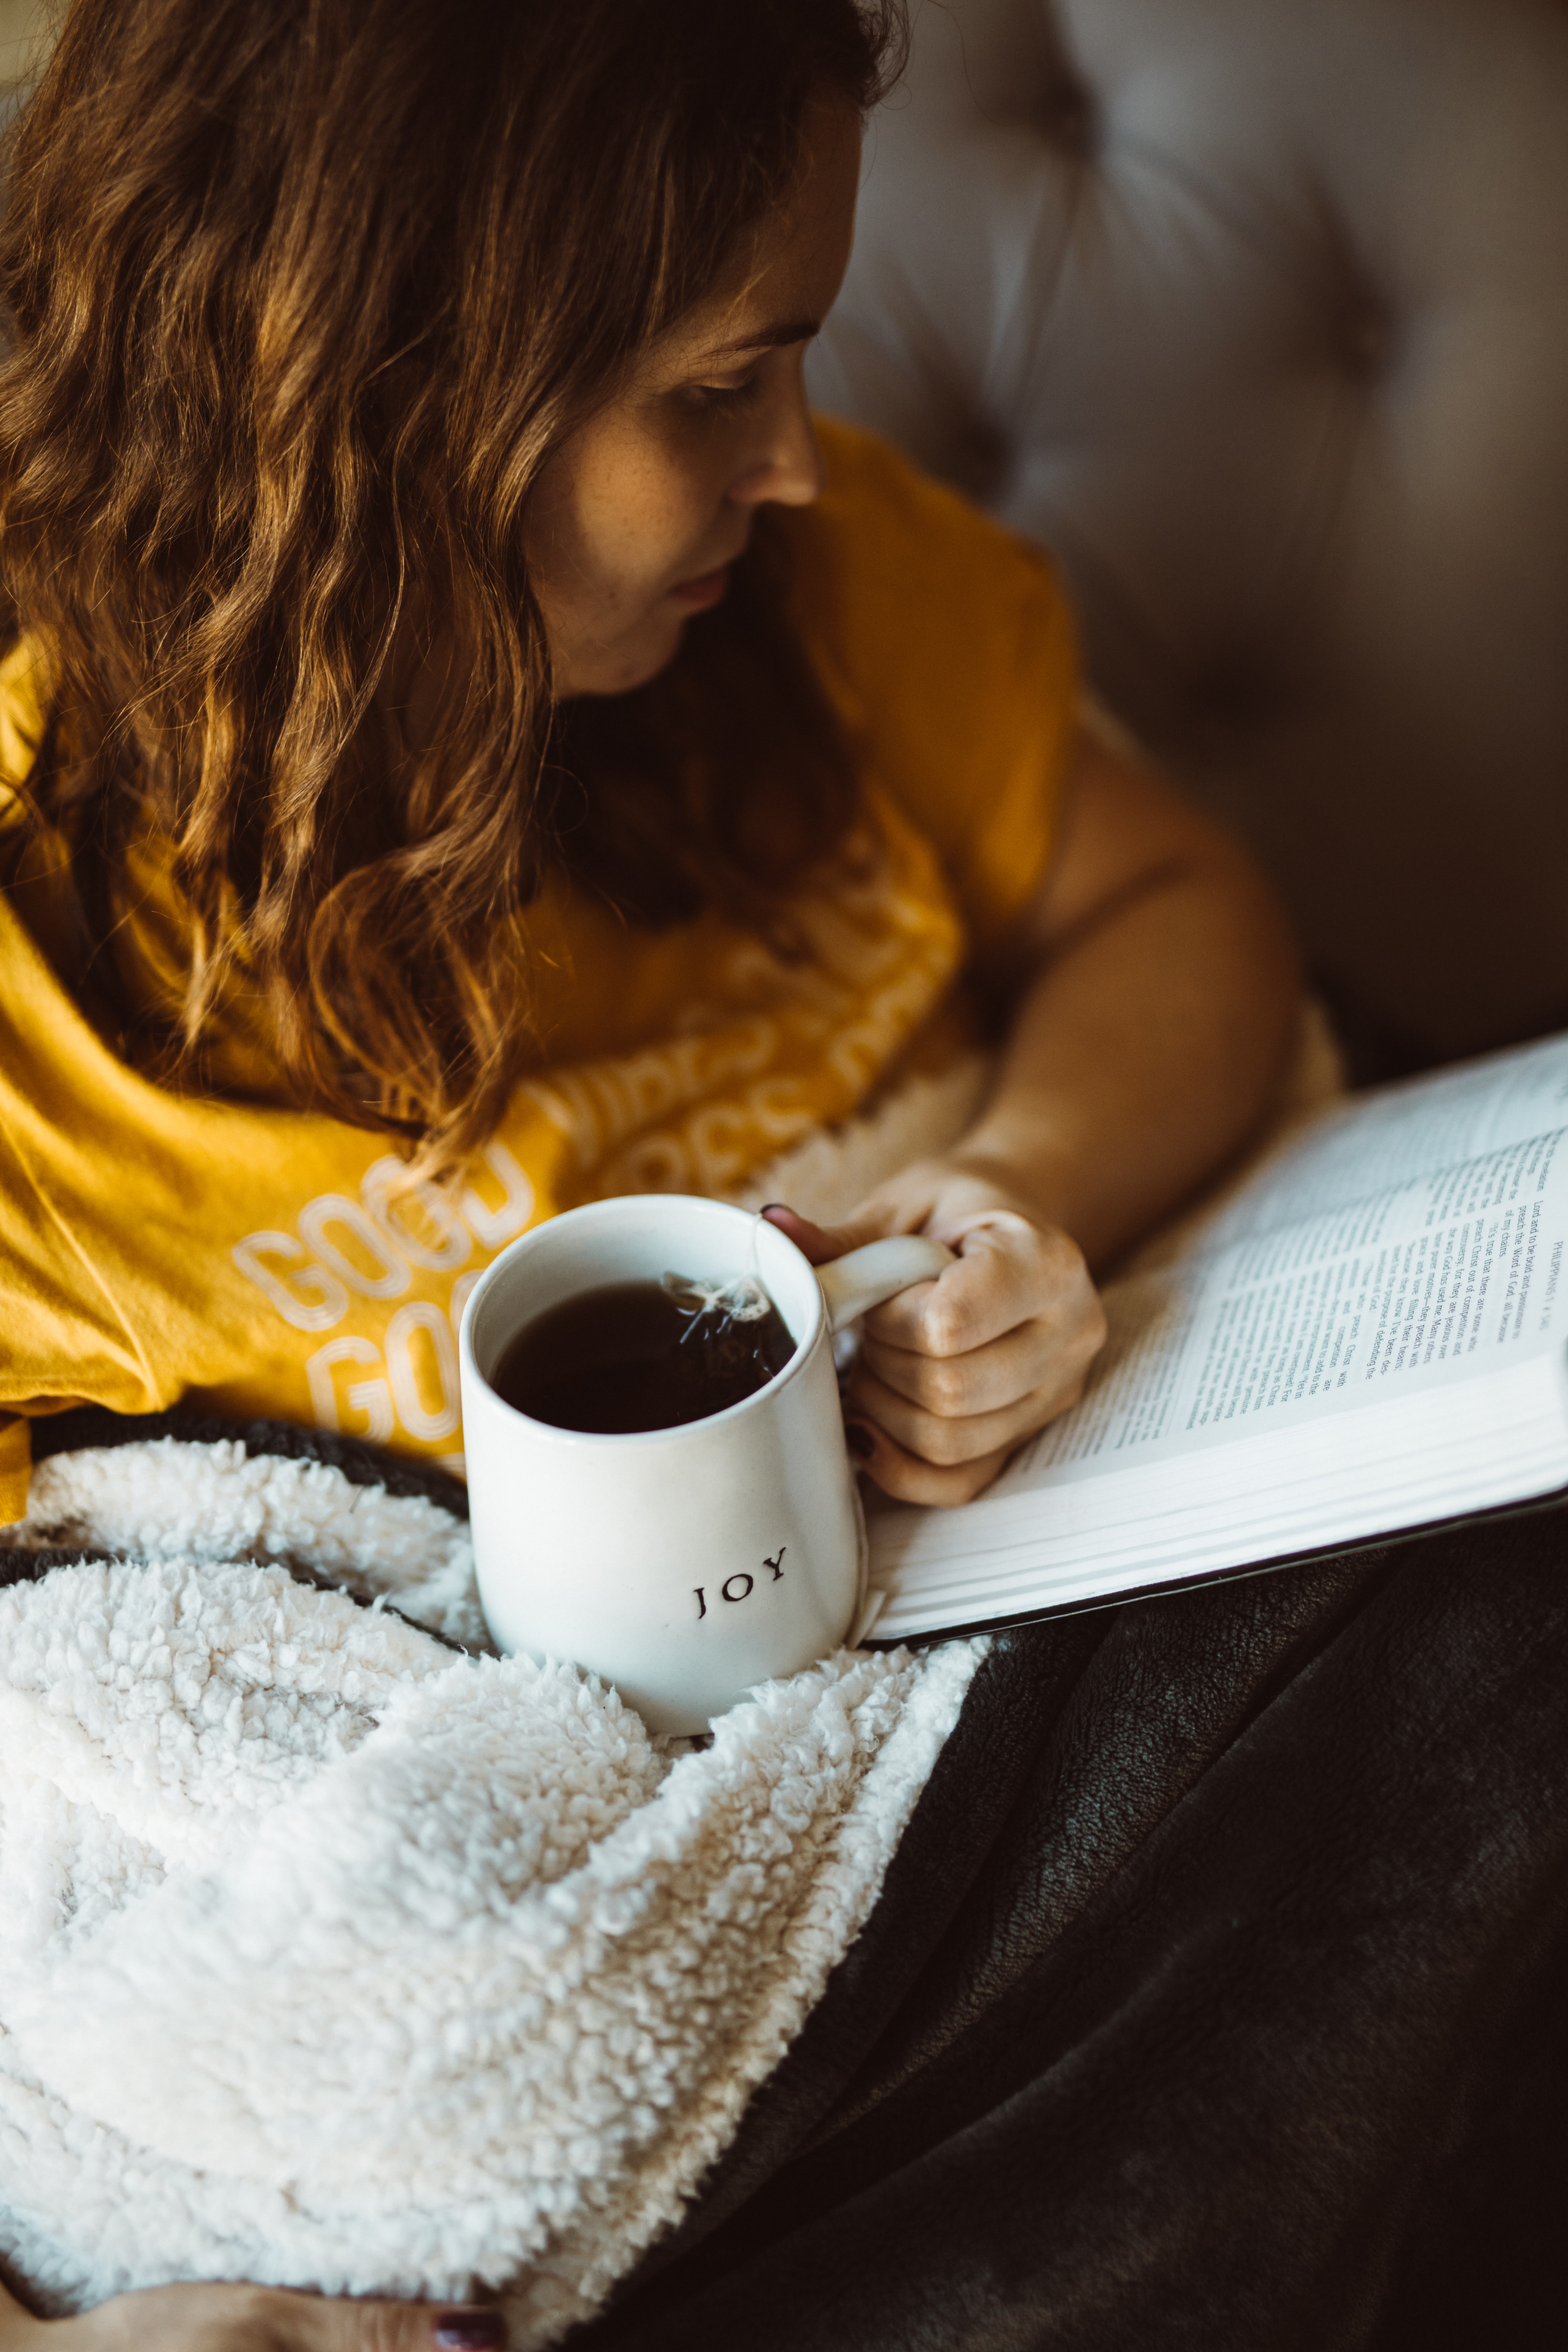 woman reading book while holding mug of coffee